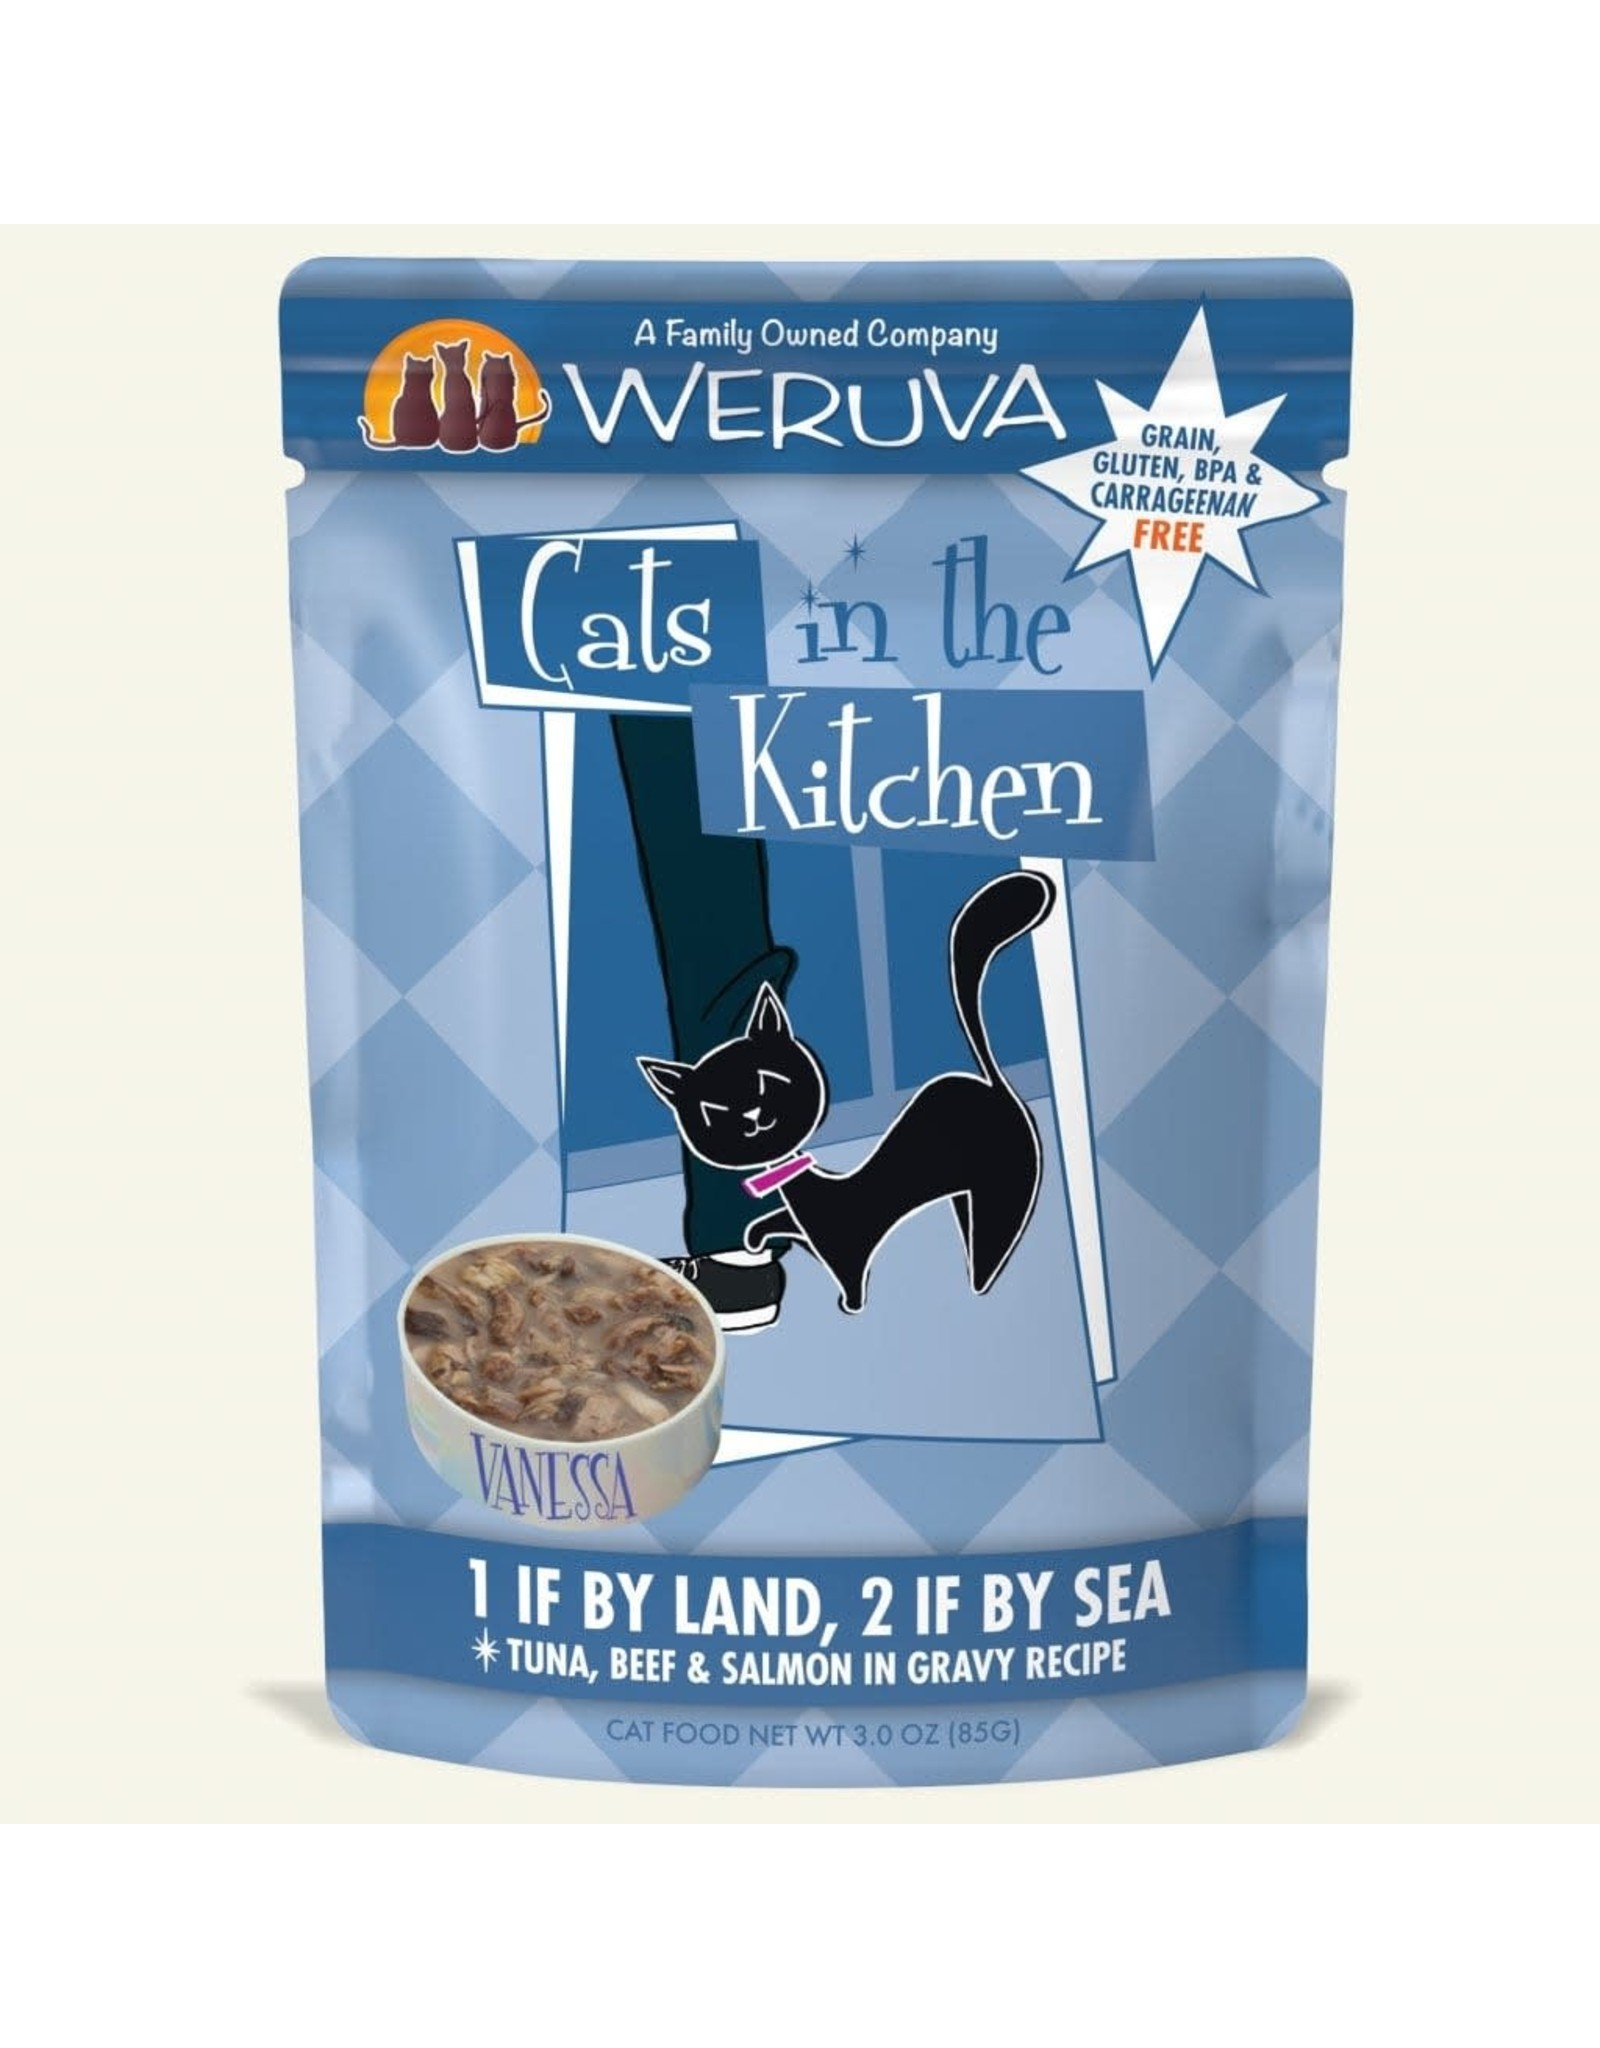 Weruva Weruva Cats in the Kitchen 1 if by Land, 2 if by Sea Tuna, Beef & Salmon in Gravy Cat Food 3oz Pouch